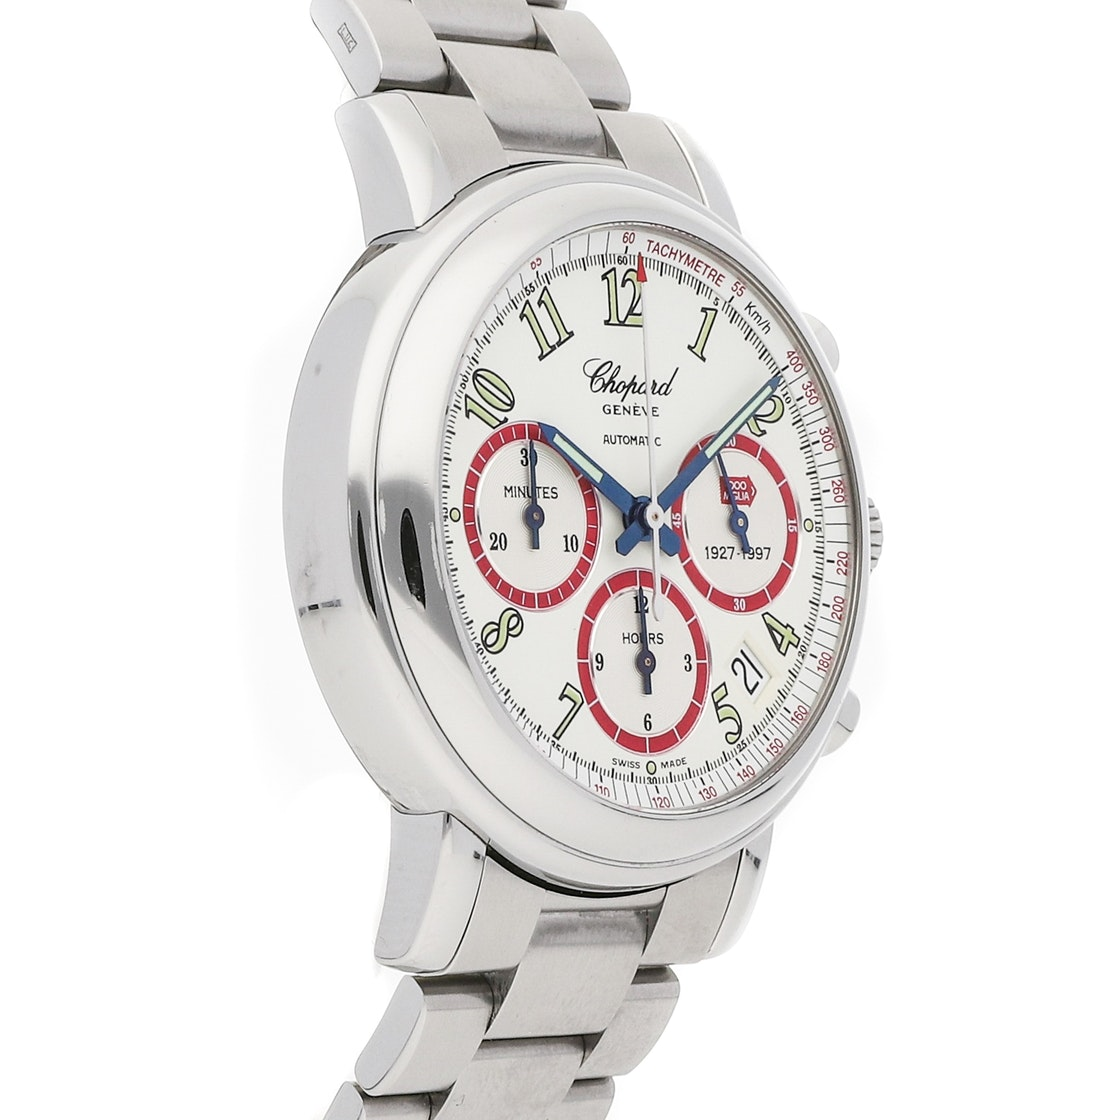 Chopard Mille Miglia Chronograph Limited Edition 16/8316